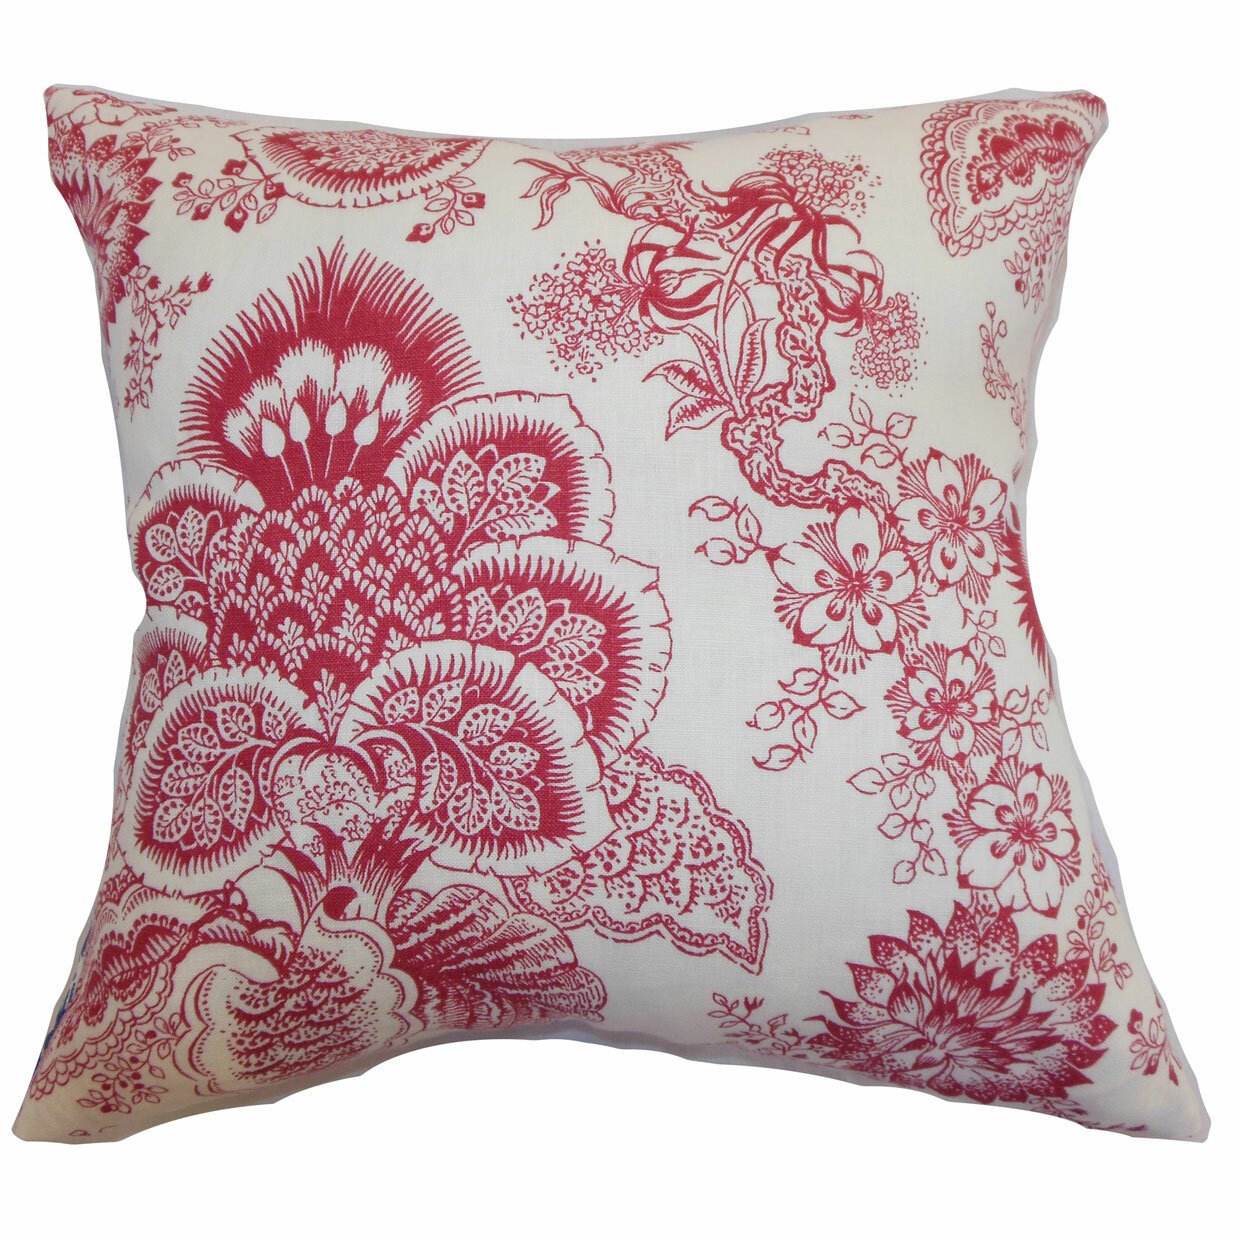 The Pillow Collection Paionia Floral Linen Throw Pillow Wayfair